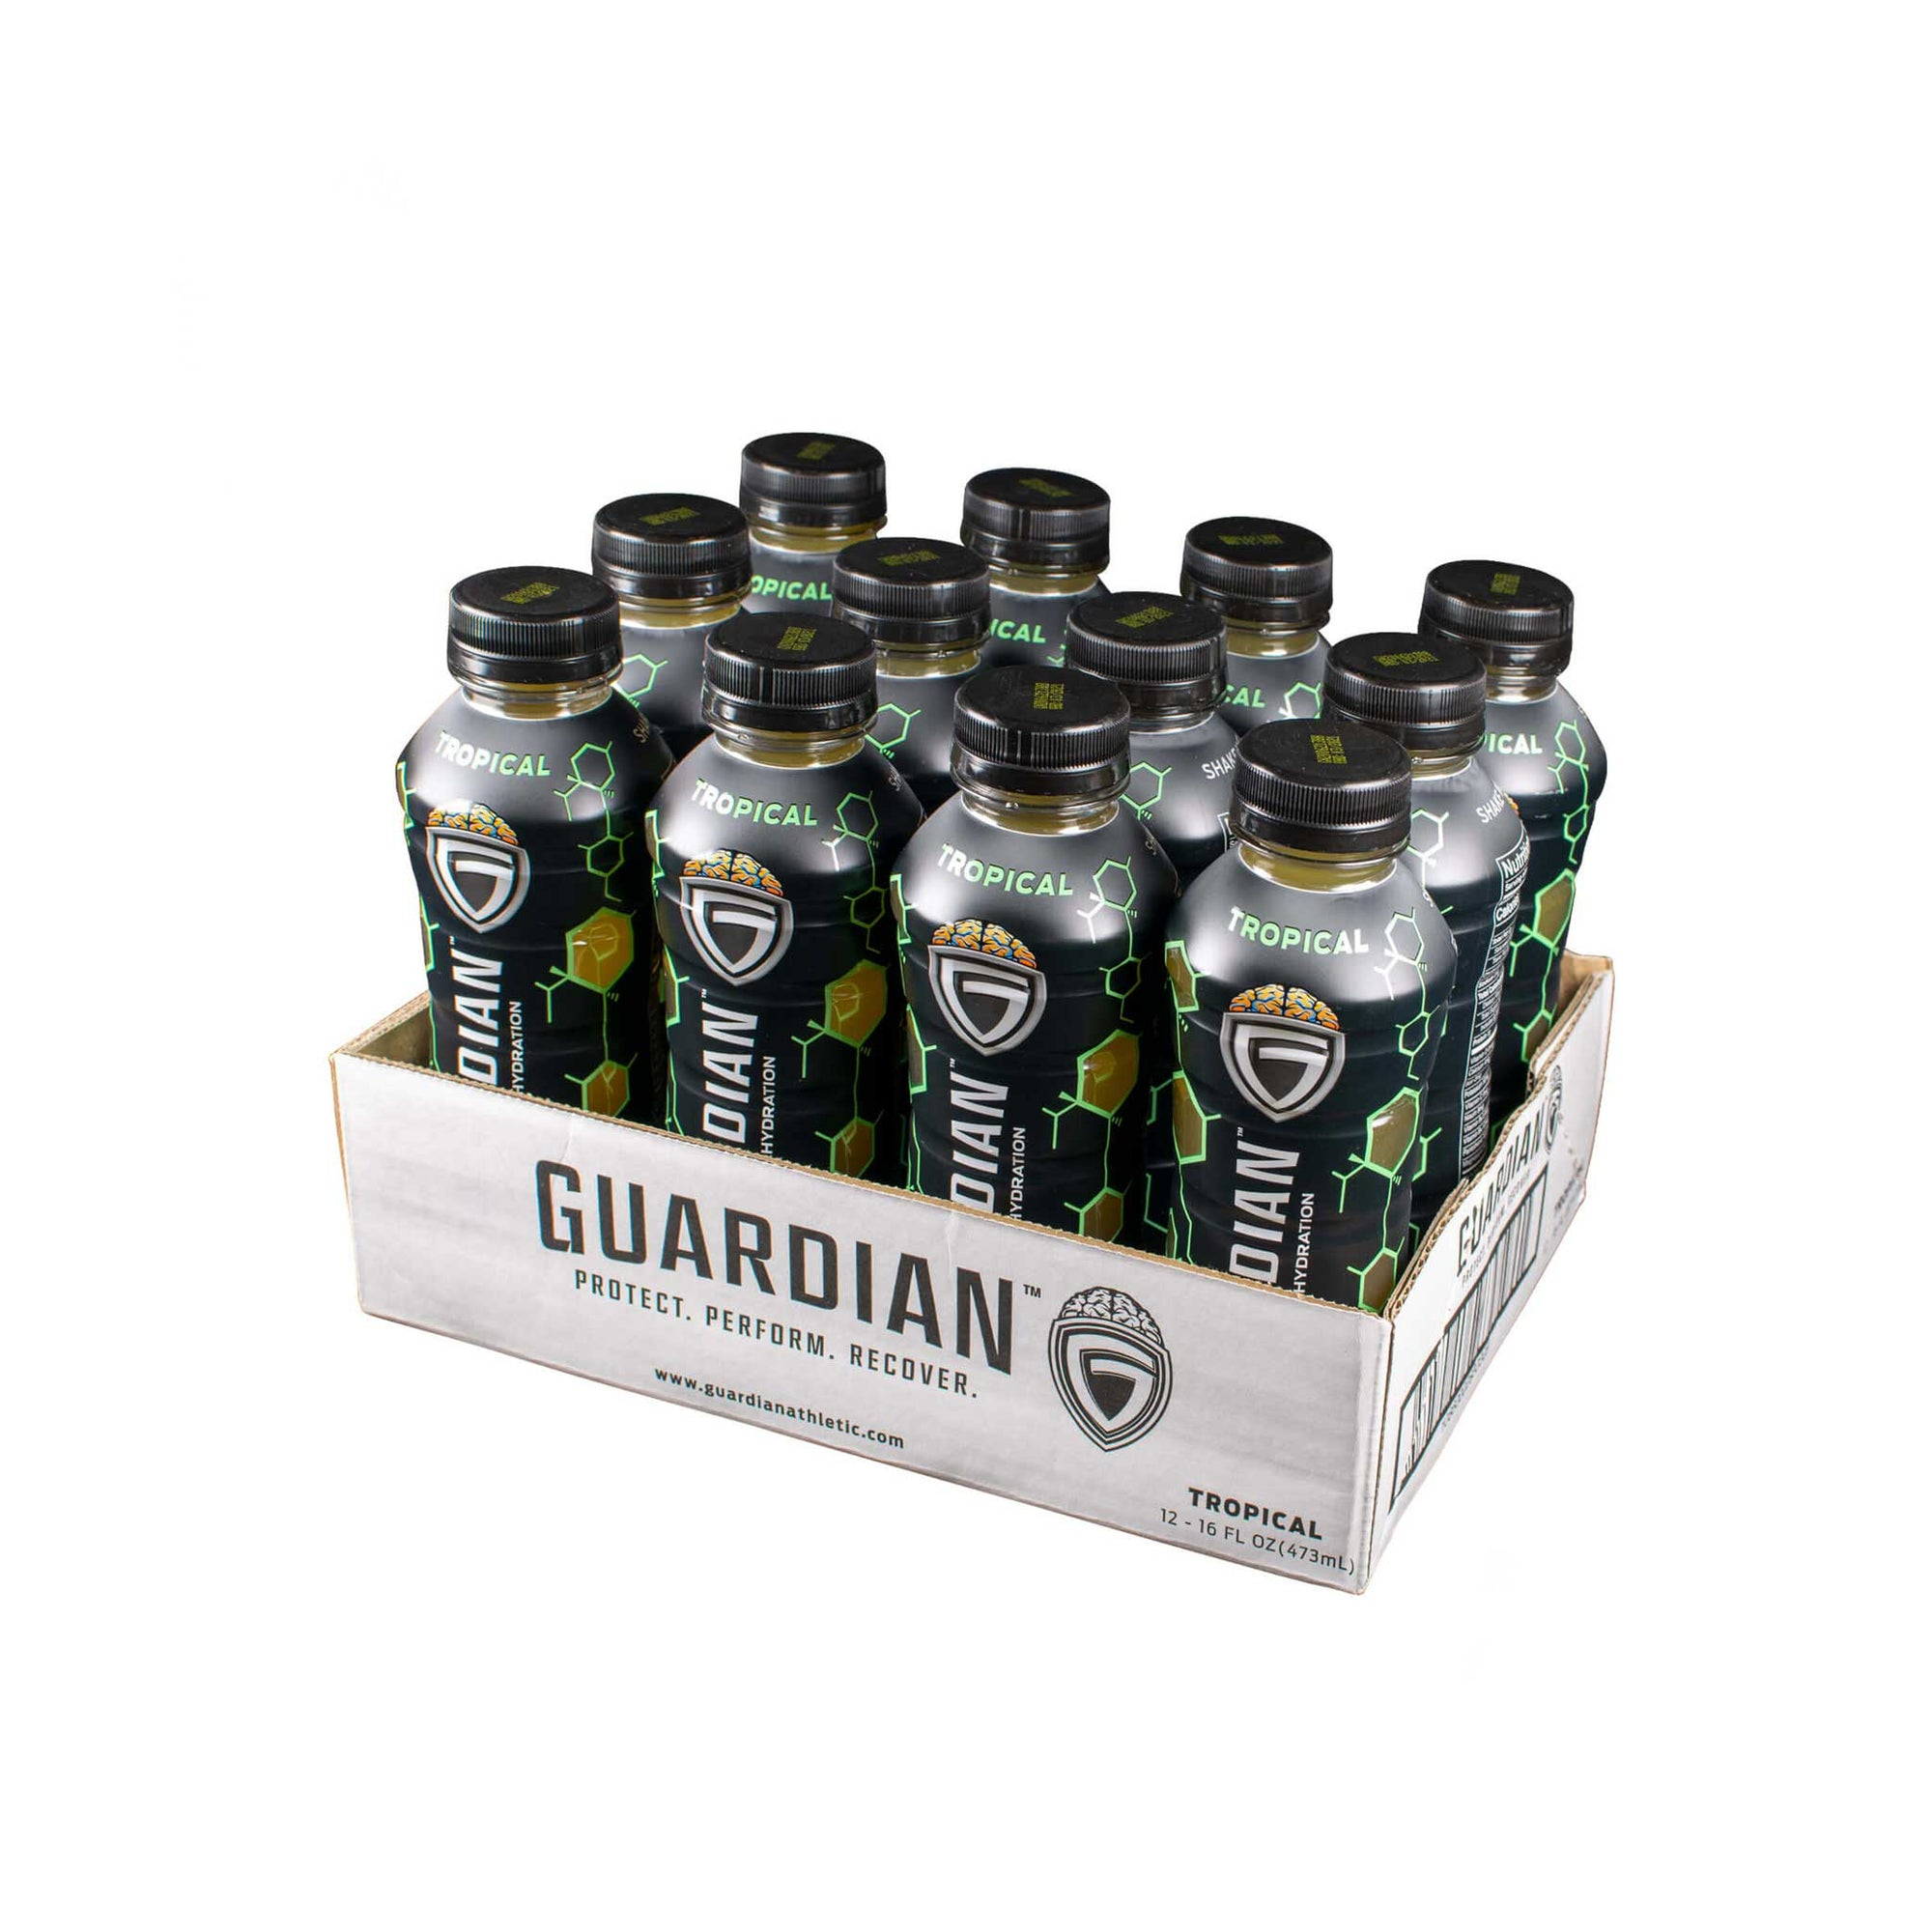 Guardian Athletic Rehydration Tropical - 12 Pack